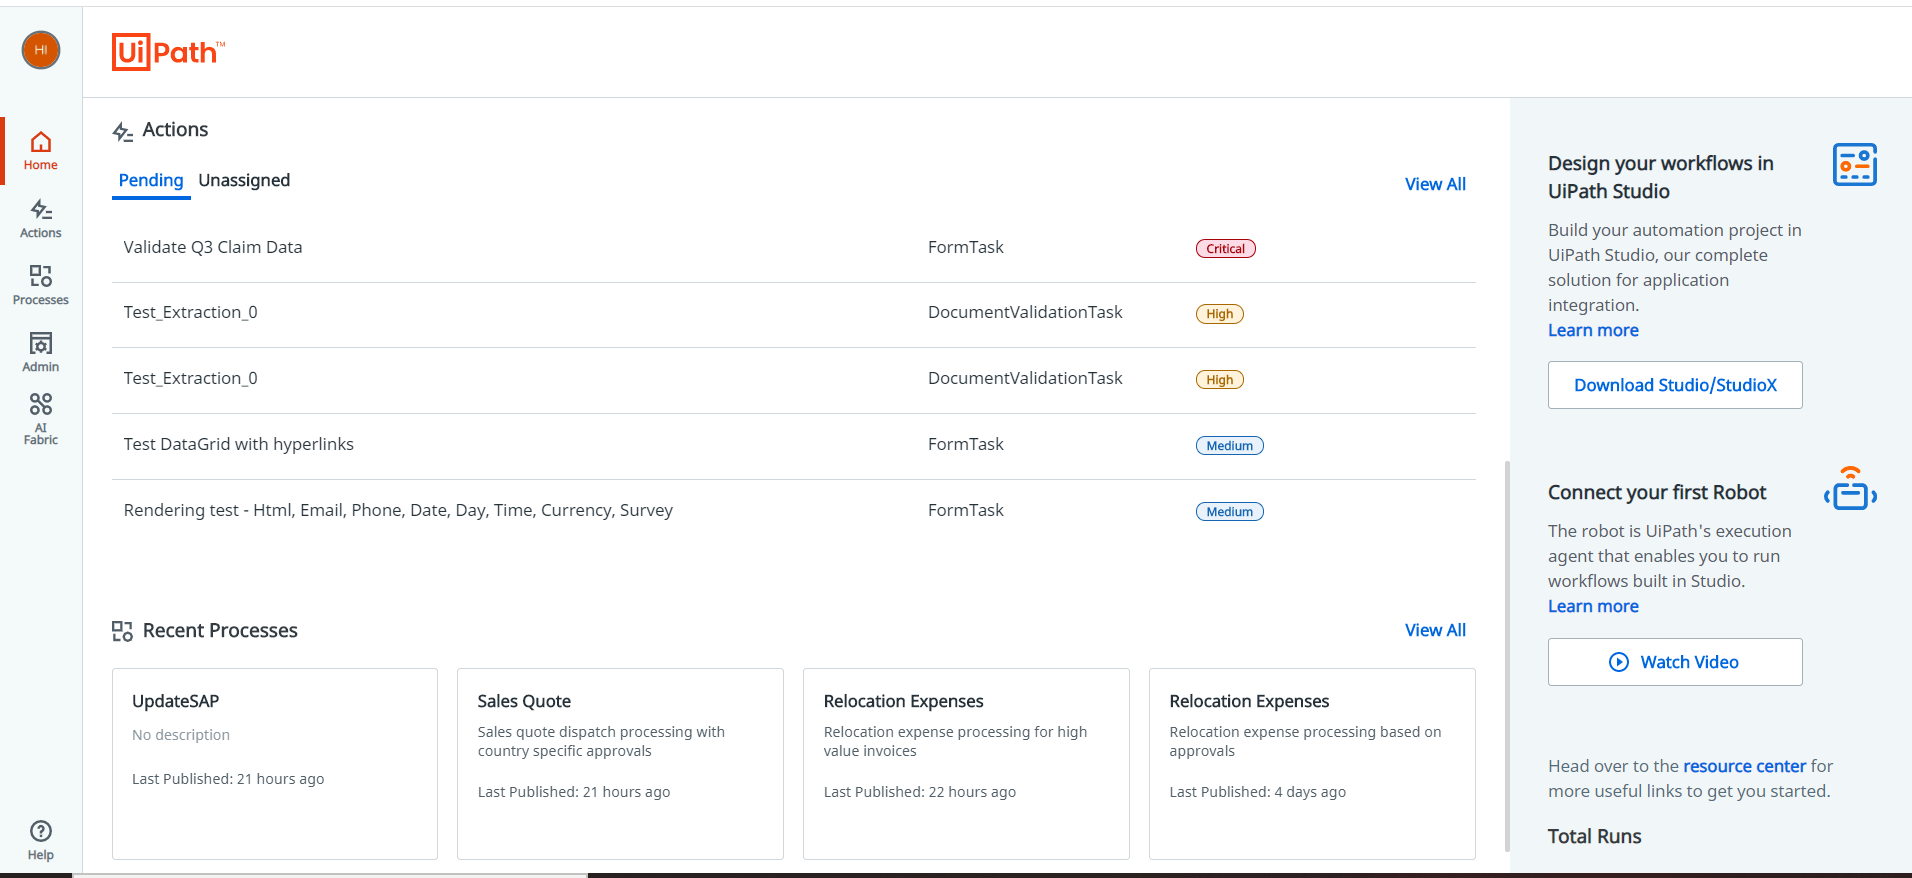 uipath action center home august 2020 update